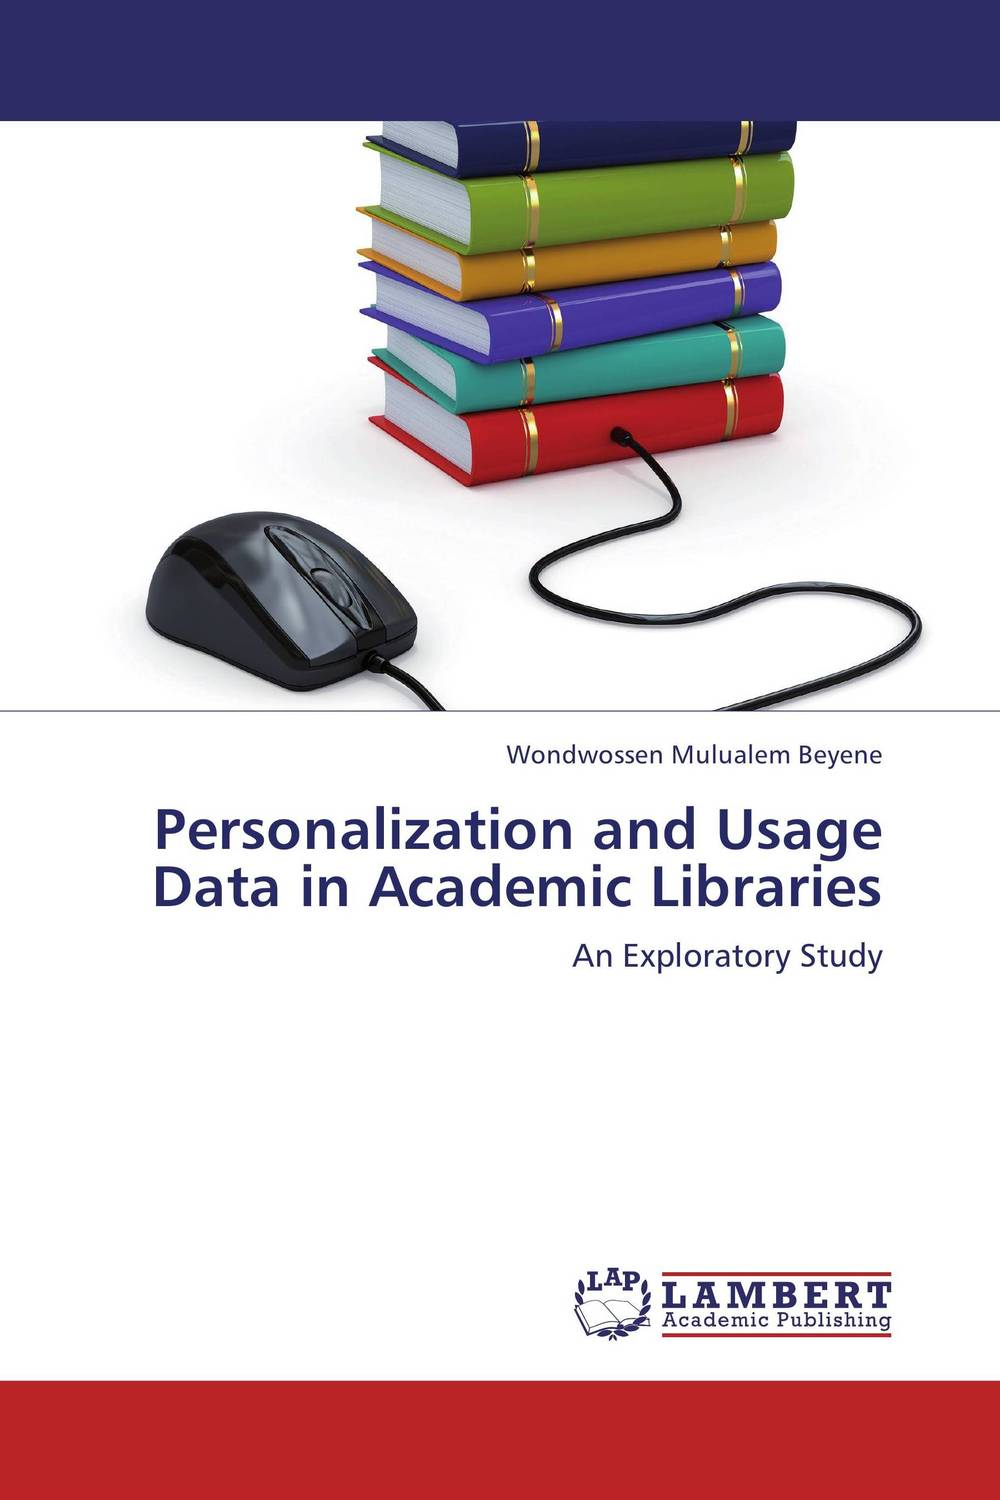 Personalization and Usage Data in Academic Libraries supervised delivery services in ghana